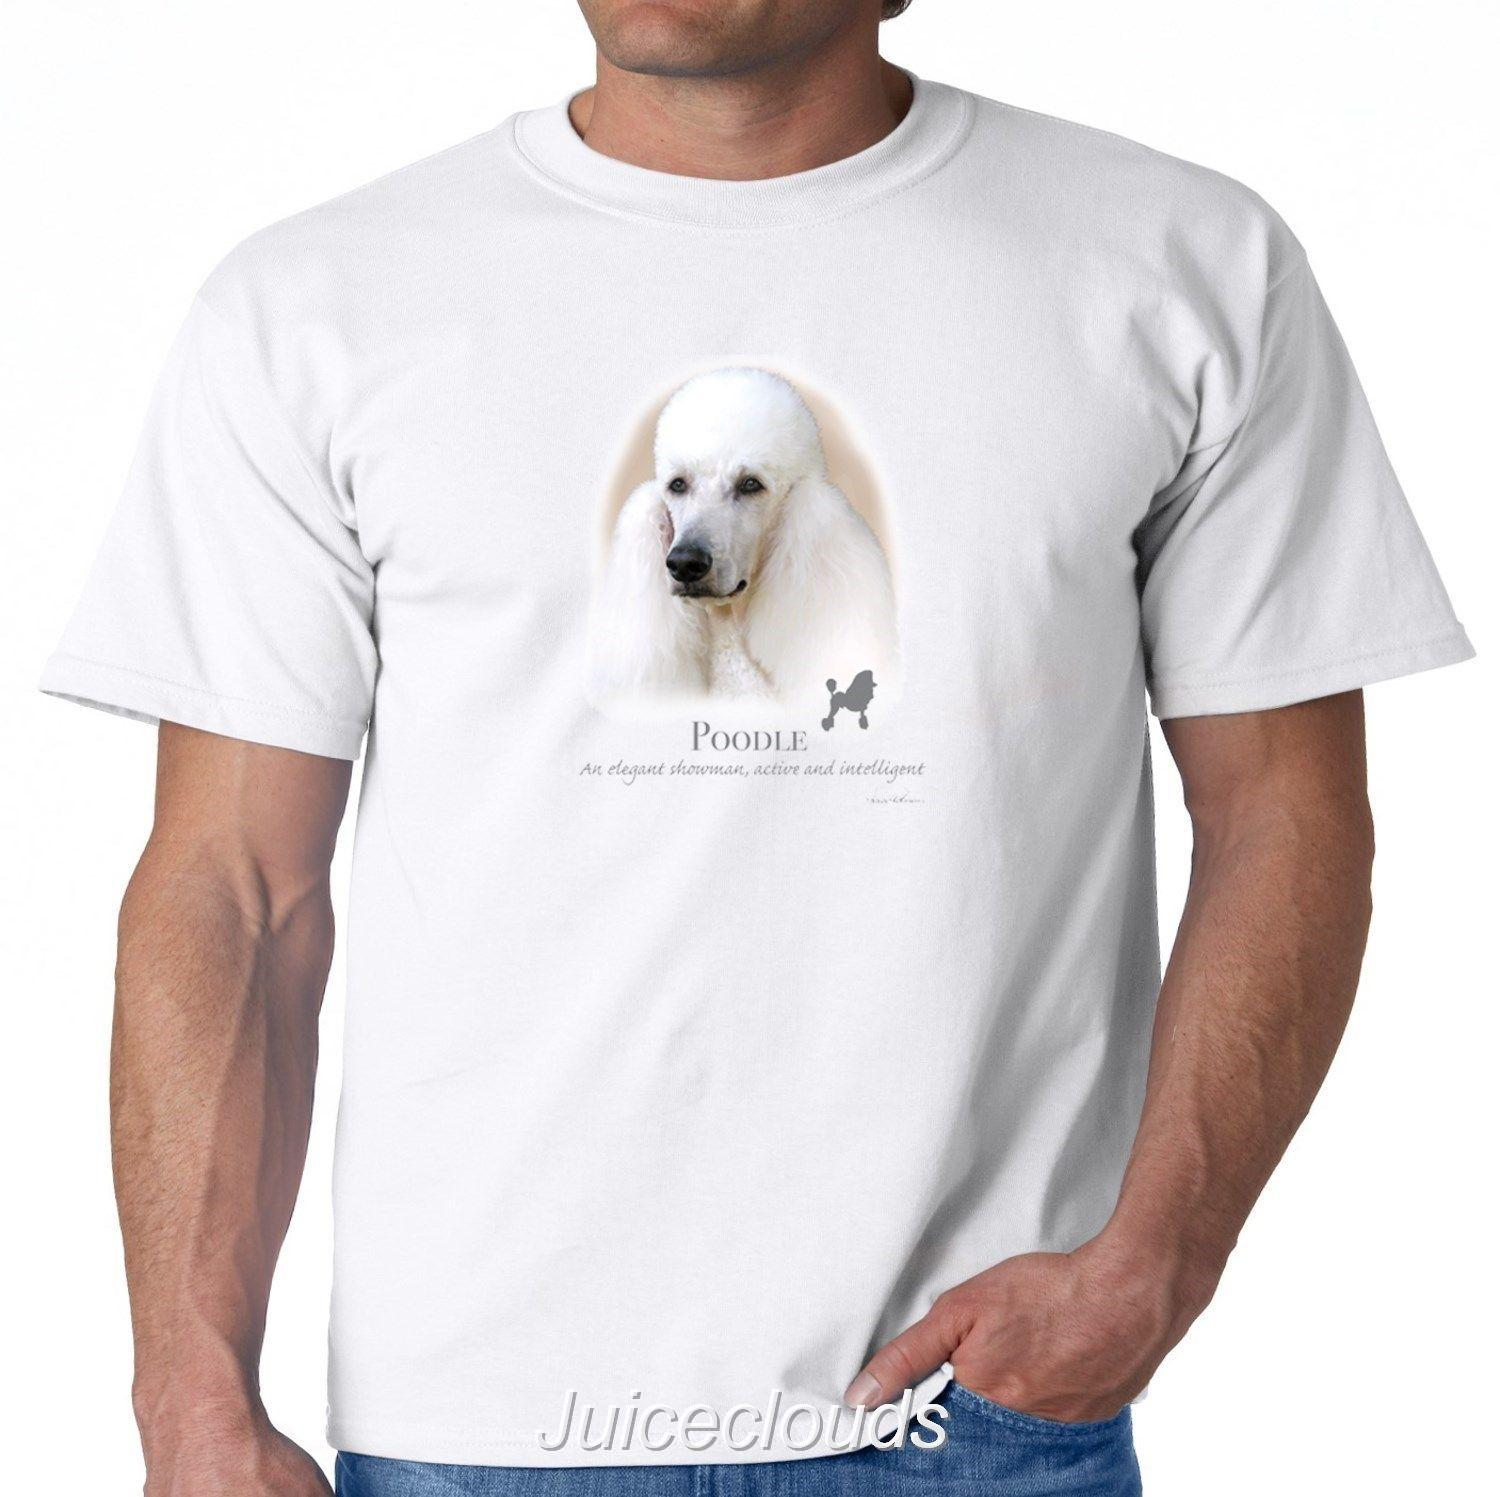 White Poodle T-Shirt Poodle Puppy Pet Rescue Dog Owner Men s Tee 2018 funny  tee 100% cotton cool lovely summer t-shirt Tops